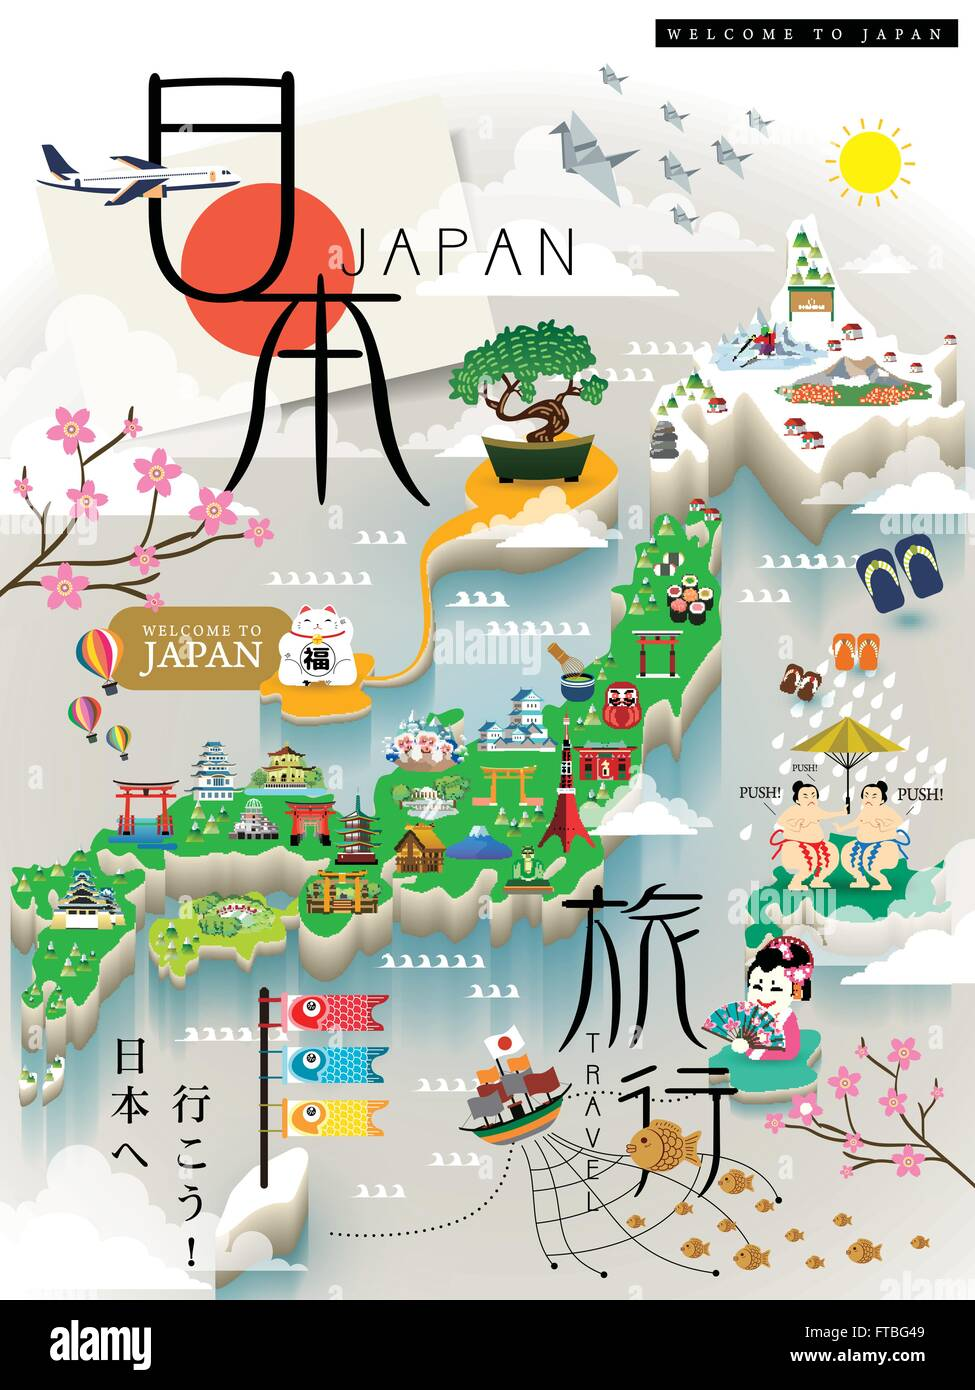 Japan travel map with famous attractions Japan travel and lets go